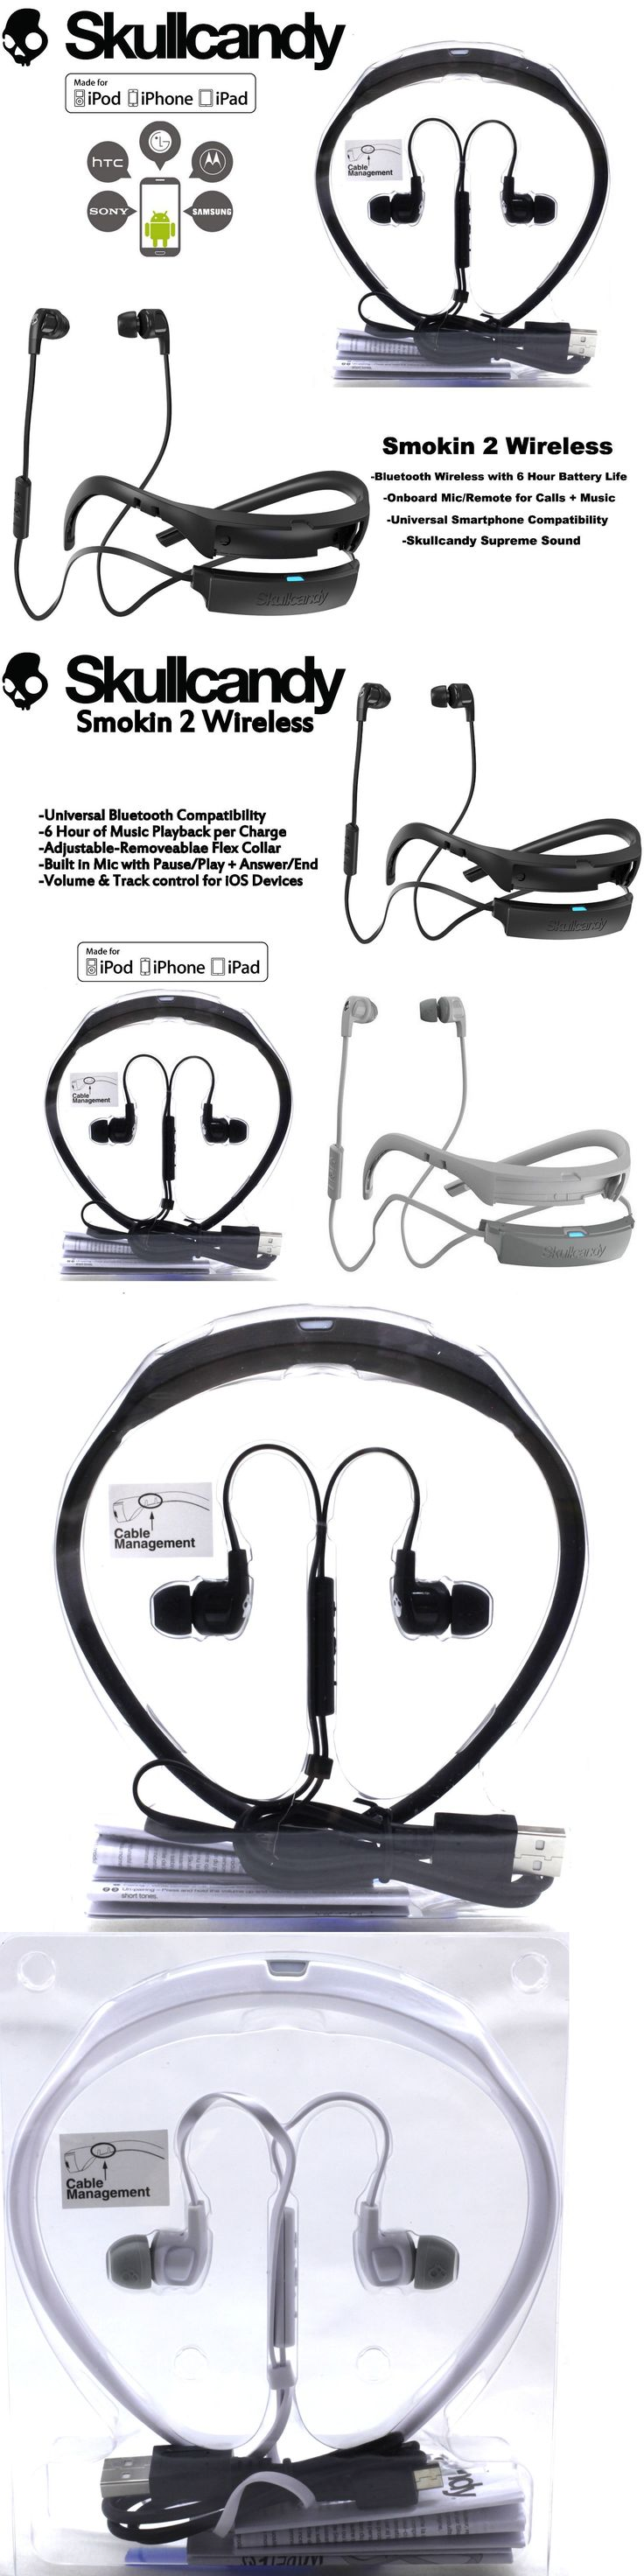 electronics: Skullcandy Smokin Buds 2 Wireless Bluetooth Earphones With Mic Black White New -> BUY IT NOW ONLY: $31.97 on eBay!